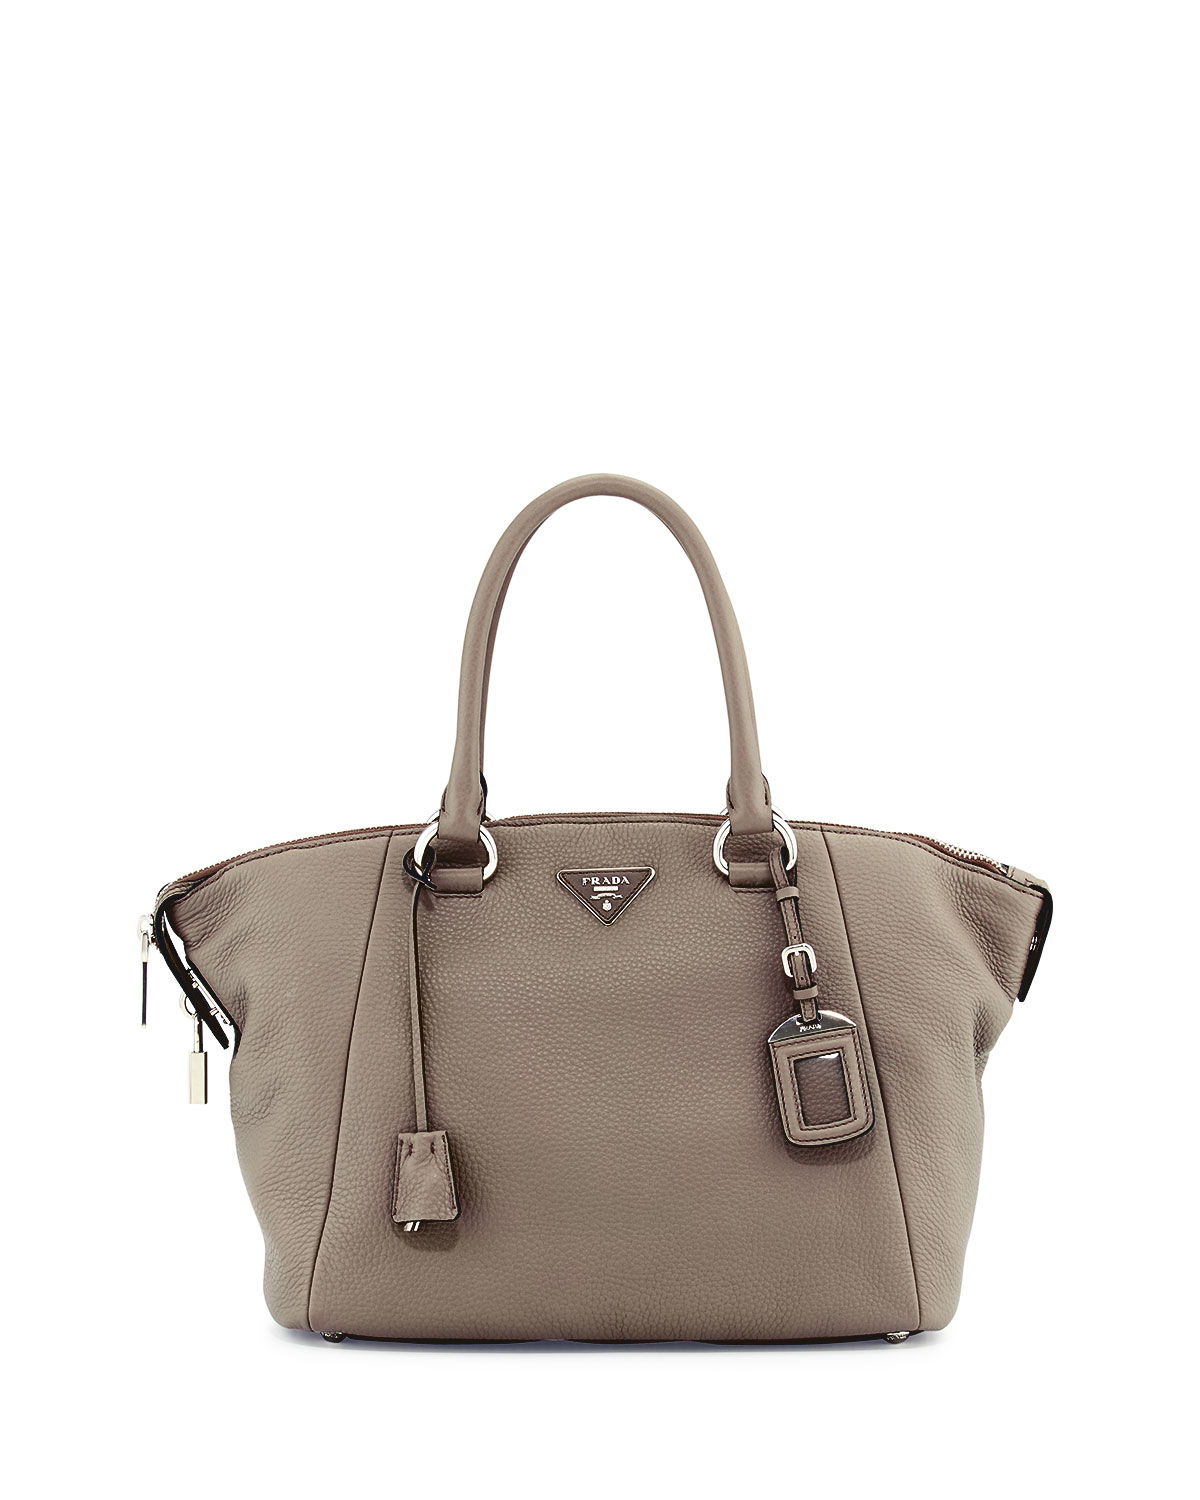 e8842137940d Prada Vitello Daino Satchel Bag